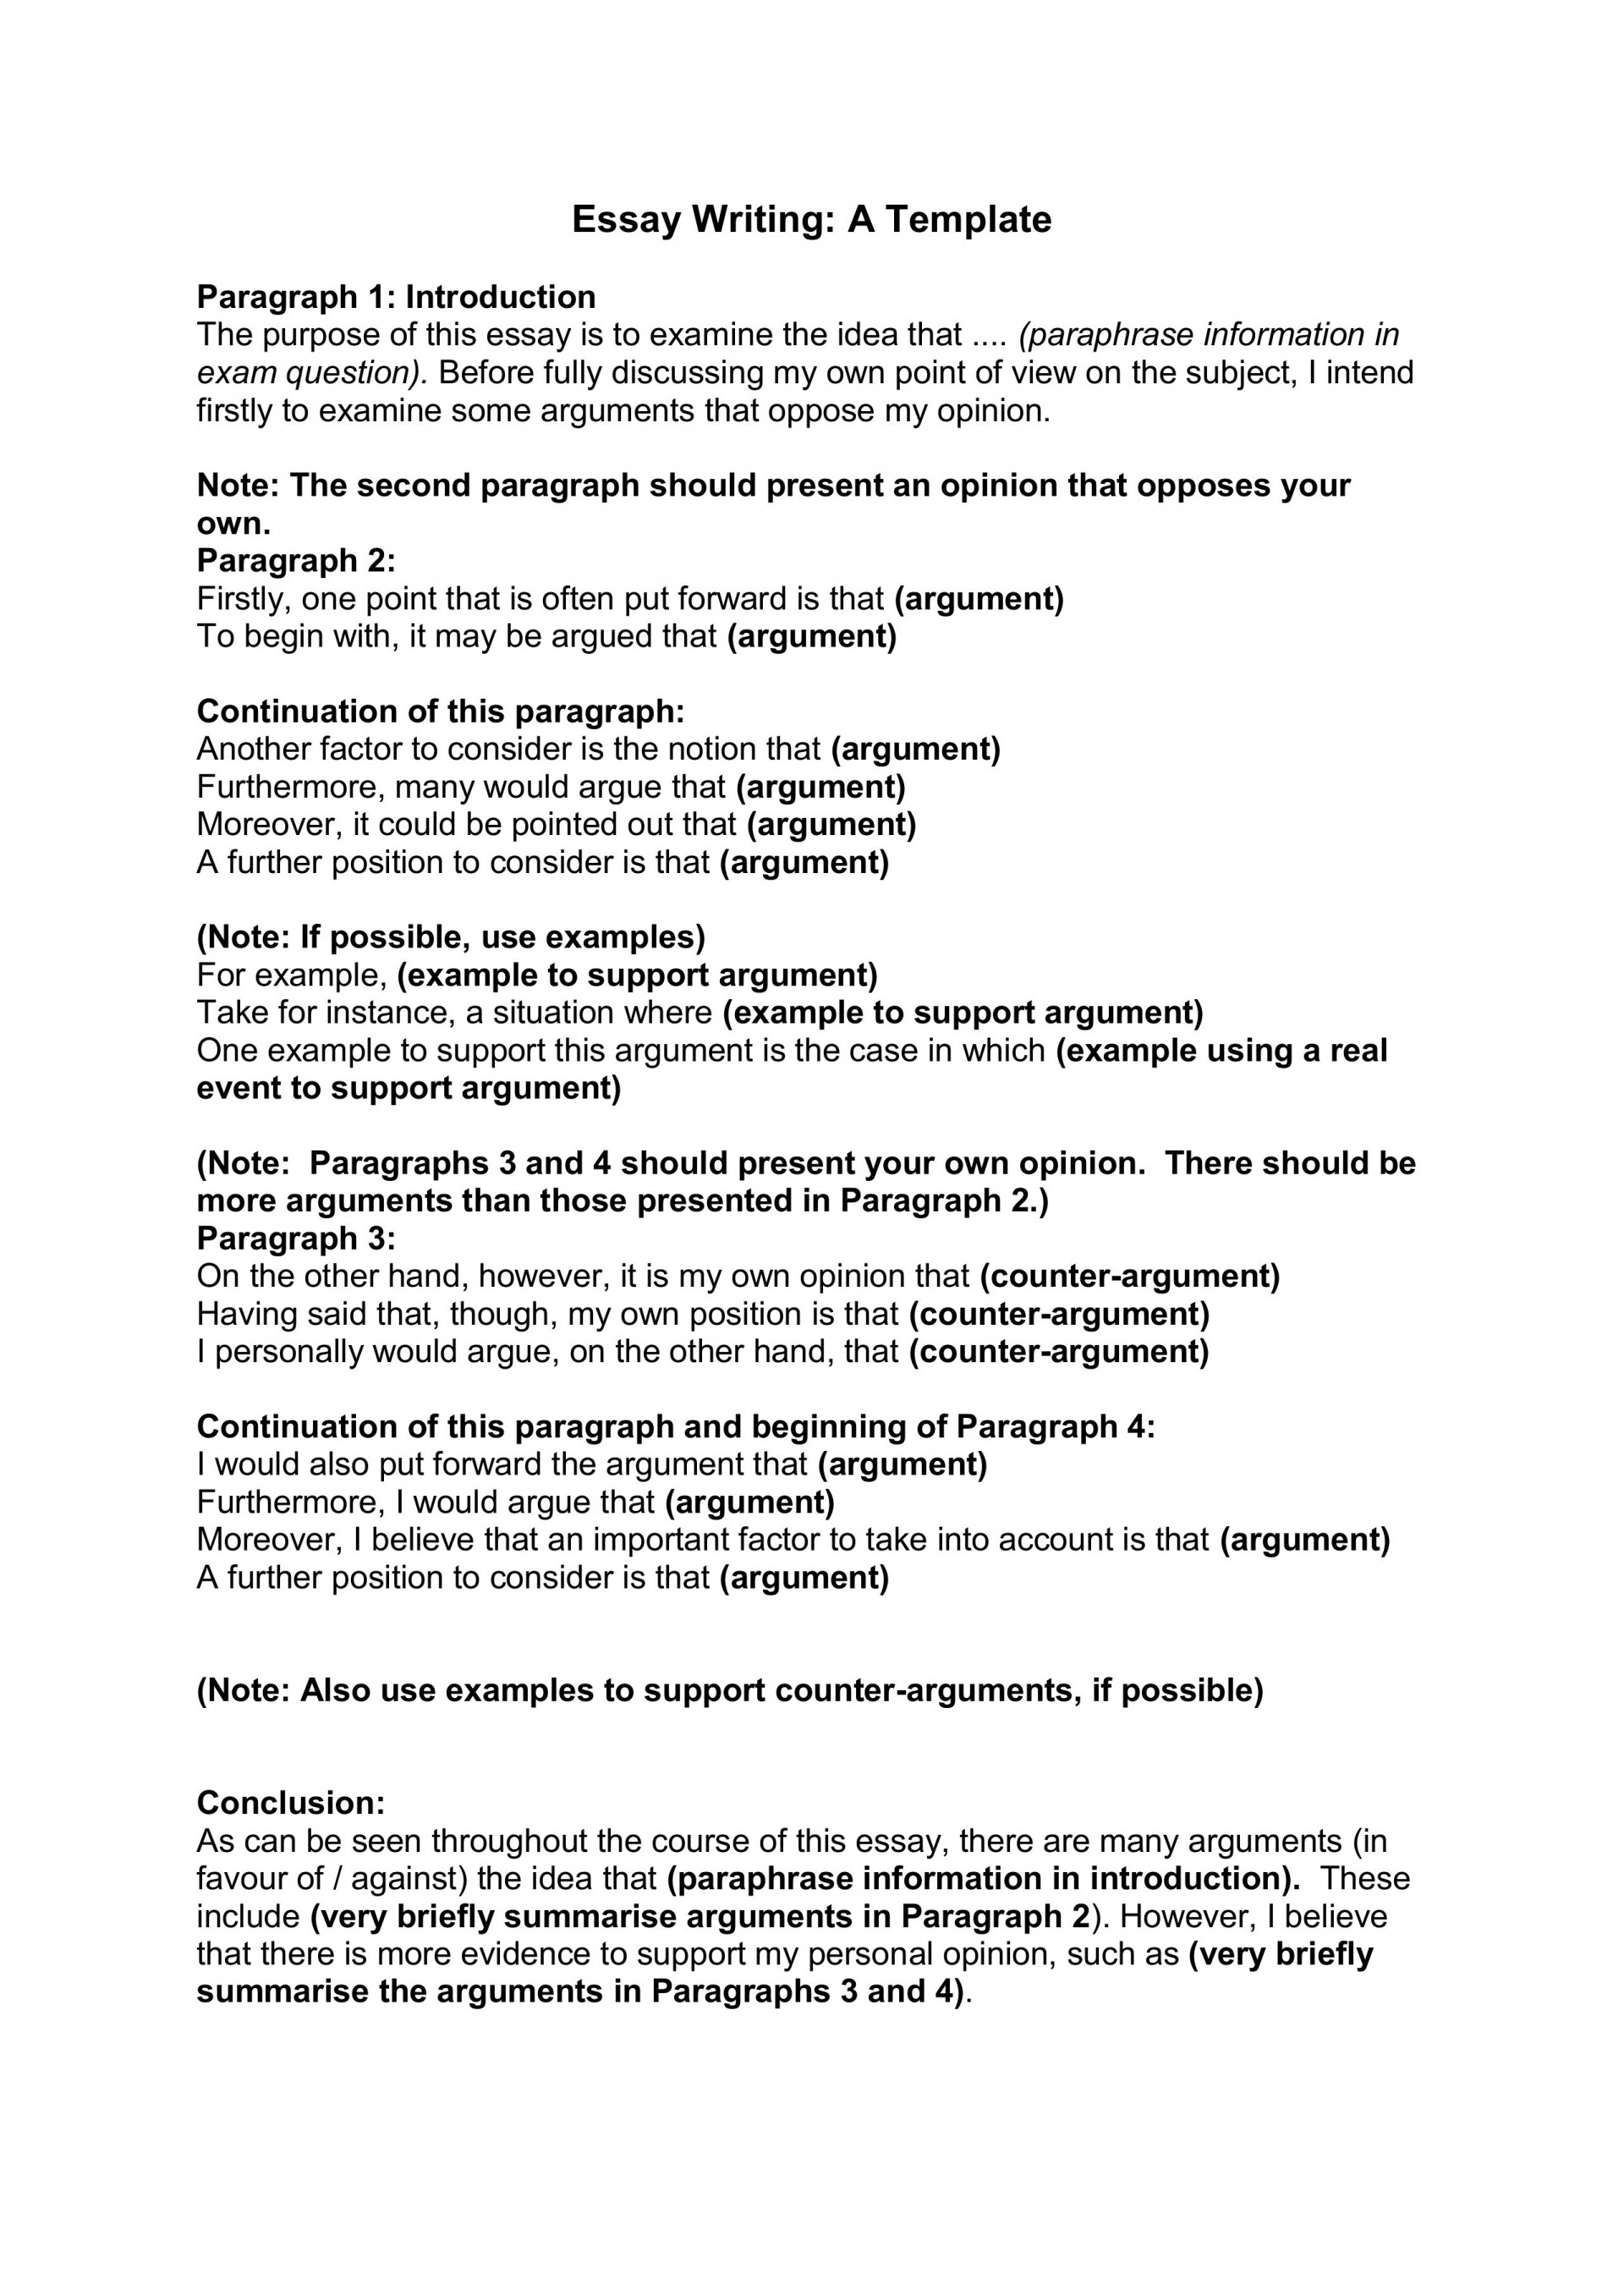 016 Image Essay Writing Homework Service Byassignmentdepa Good This I Believe Topics Template For P Sampless Stupendous Examples Personal College 1920